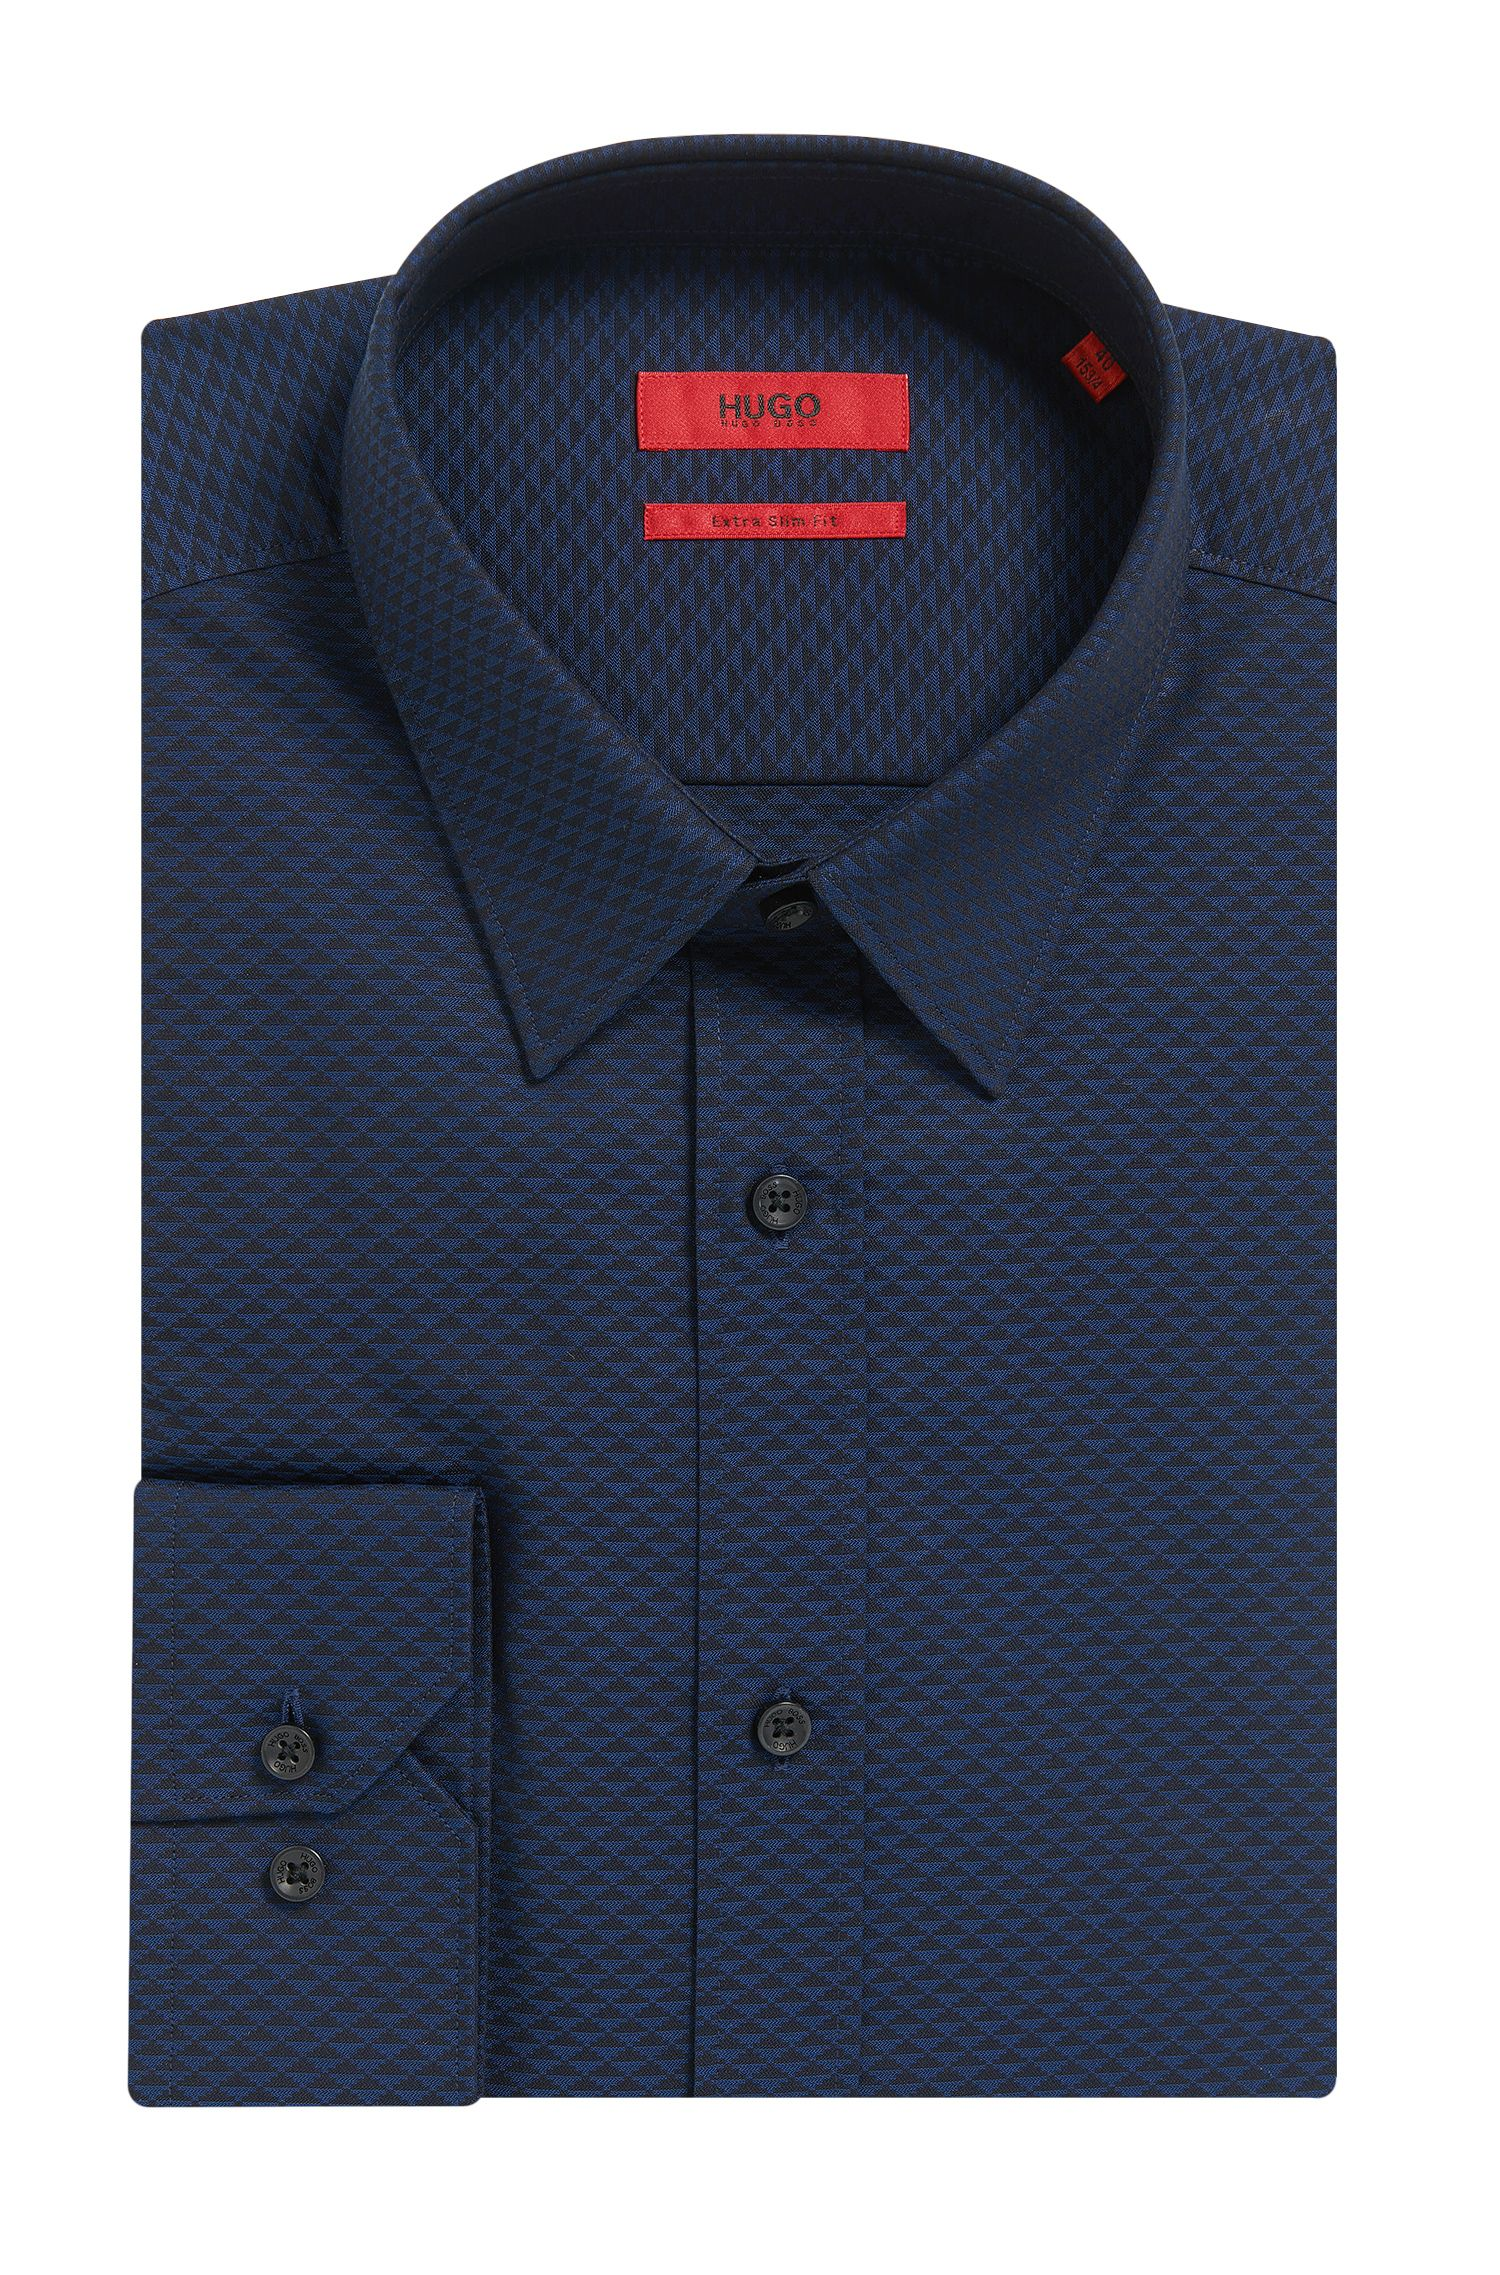 Patterned Cotton Button Down Shirt. Extra Slim Fit | Elisha, Dark Blue